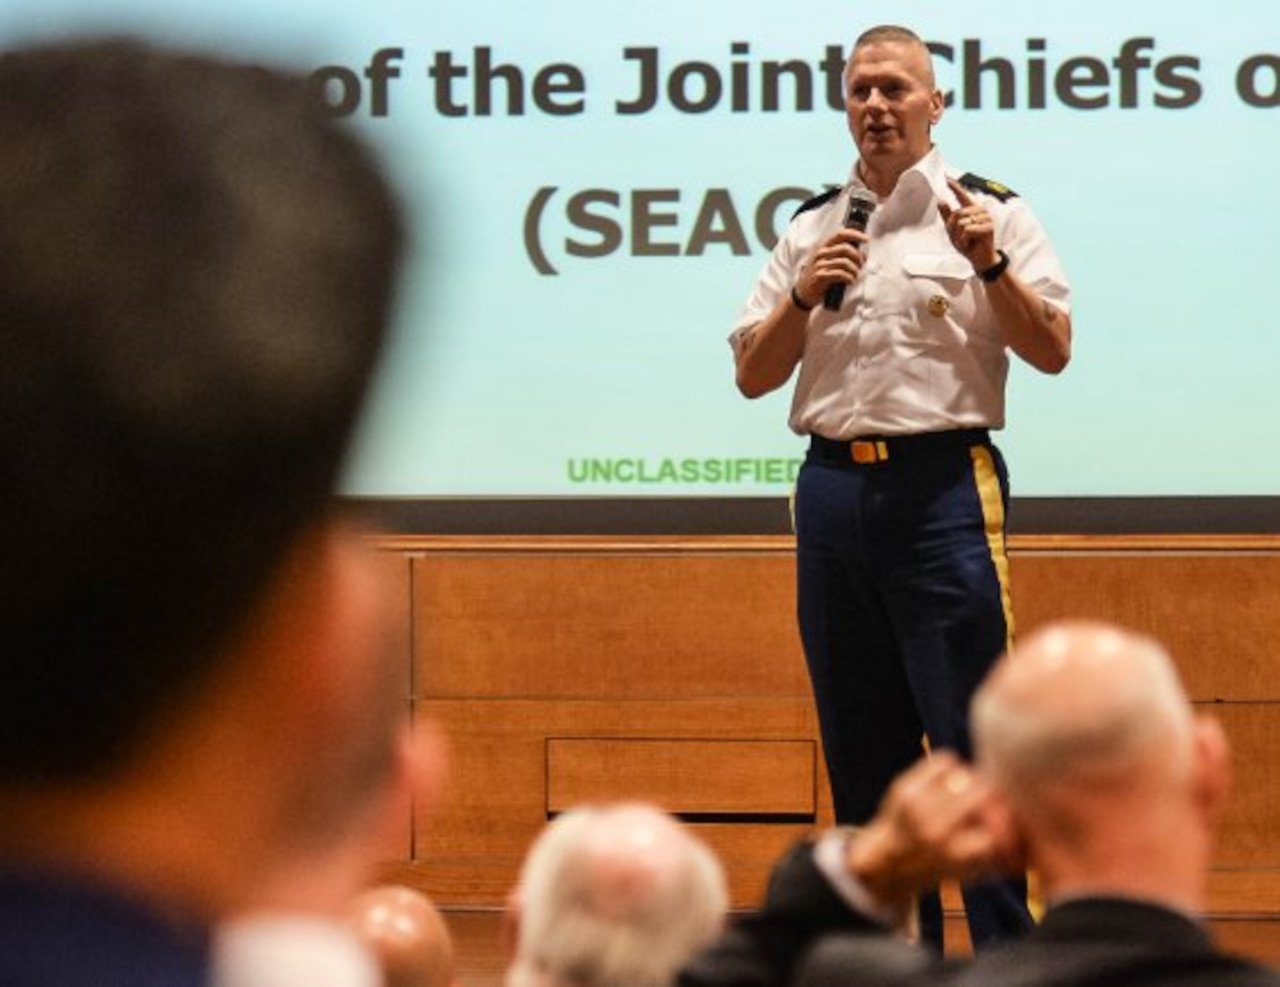 Army Command Sgt. Maj. John Wayne Troxell, senior enlisted advisor to the chairman of the Joint Chiefs of Staff, speaks at the Army Public Affairs Leadership Forum